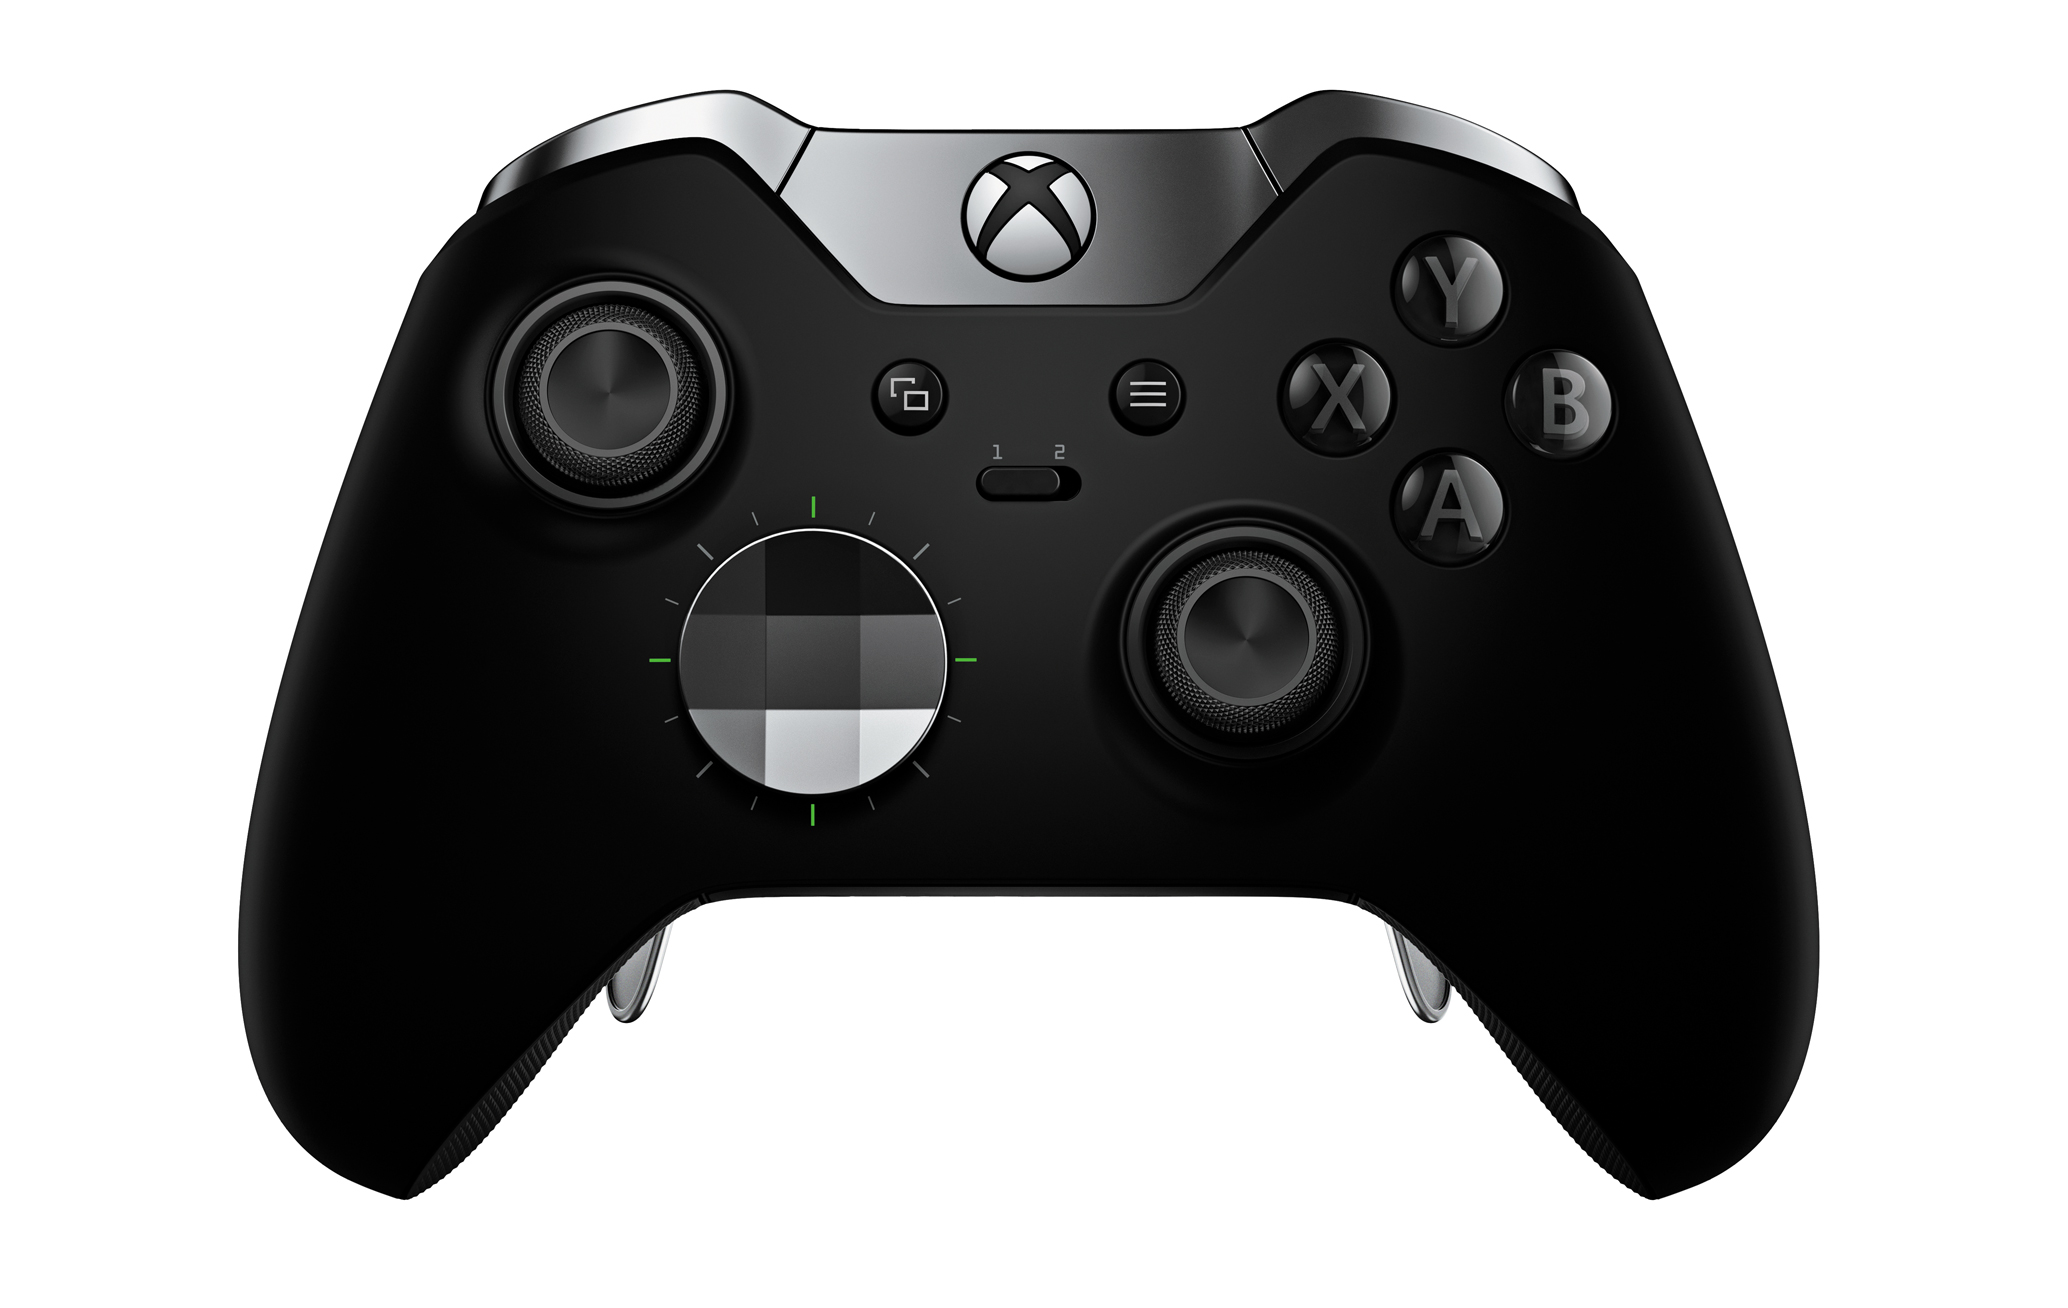 Xbox Elite Controller front circle d-pad